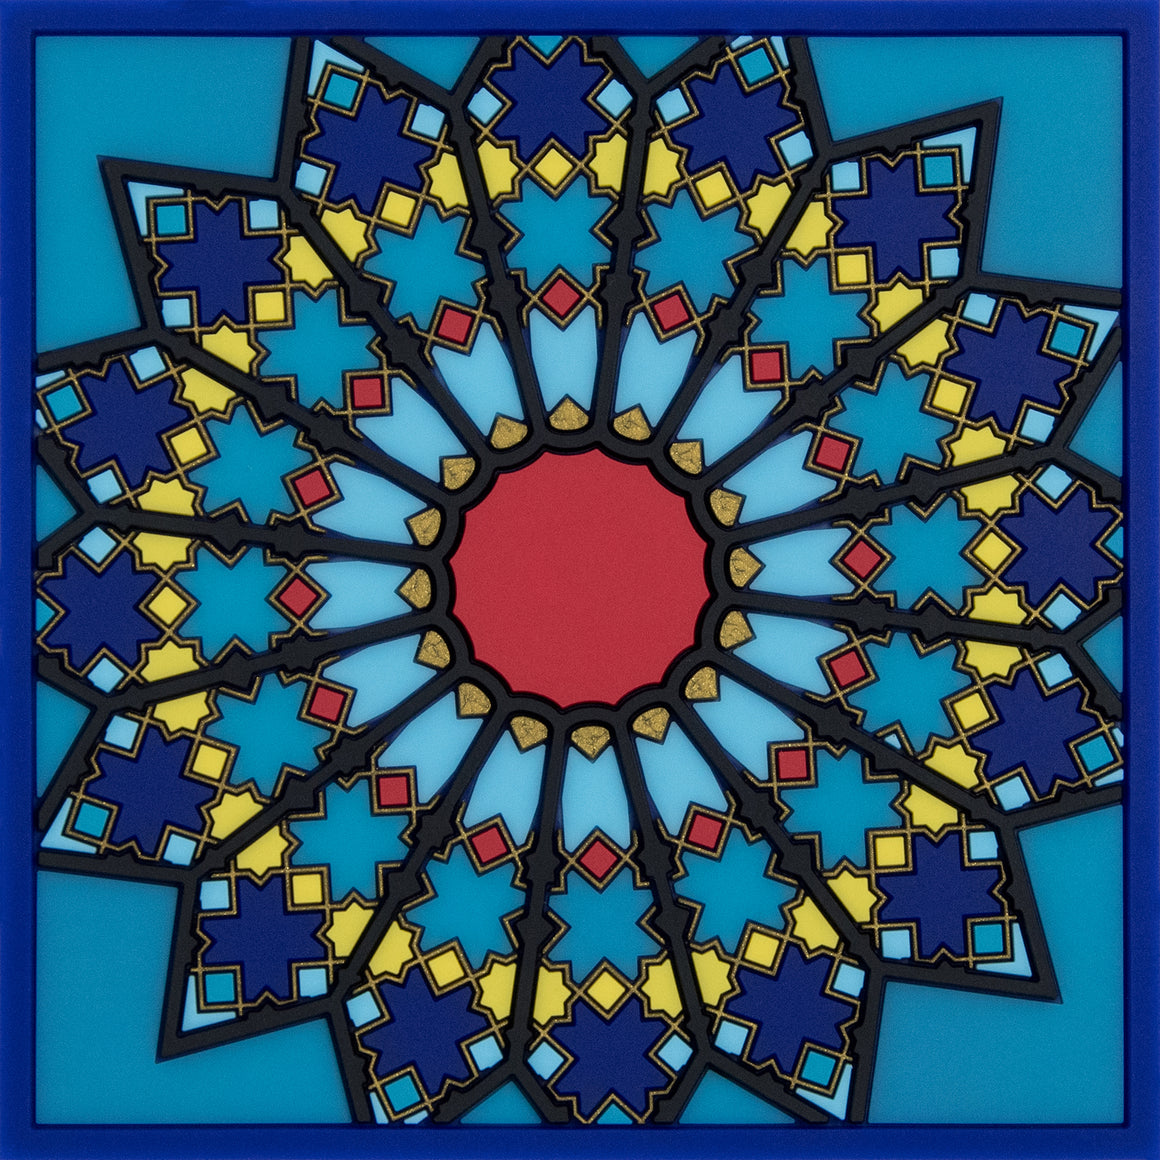 geometric pattern middle eastern blue trivet pvc the habibti collective